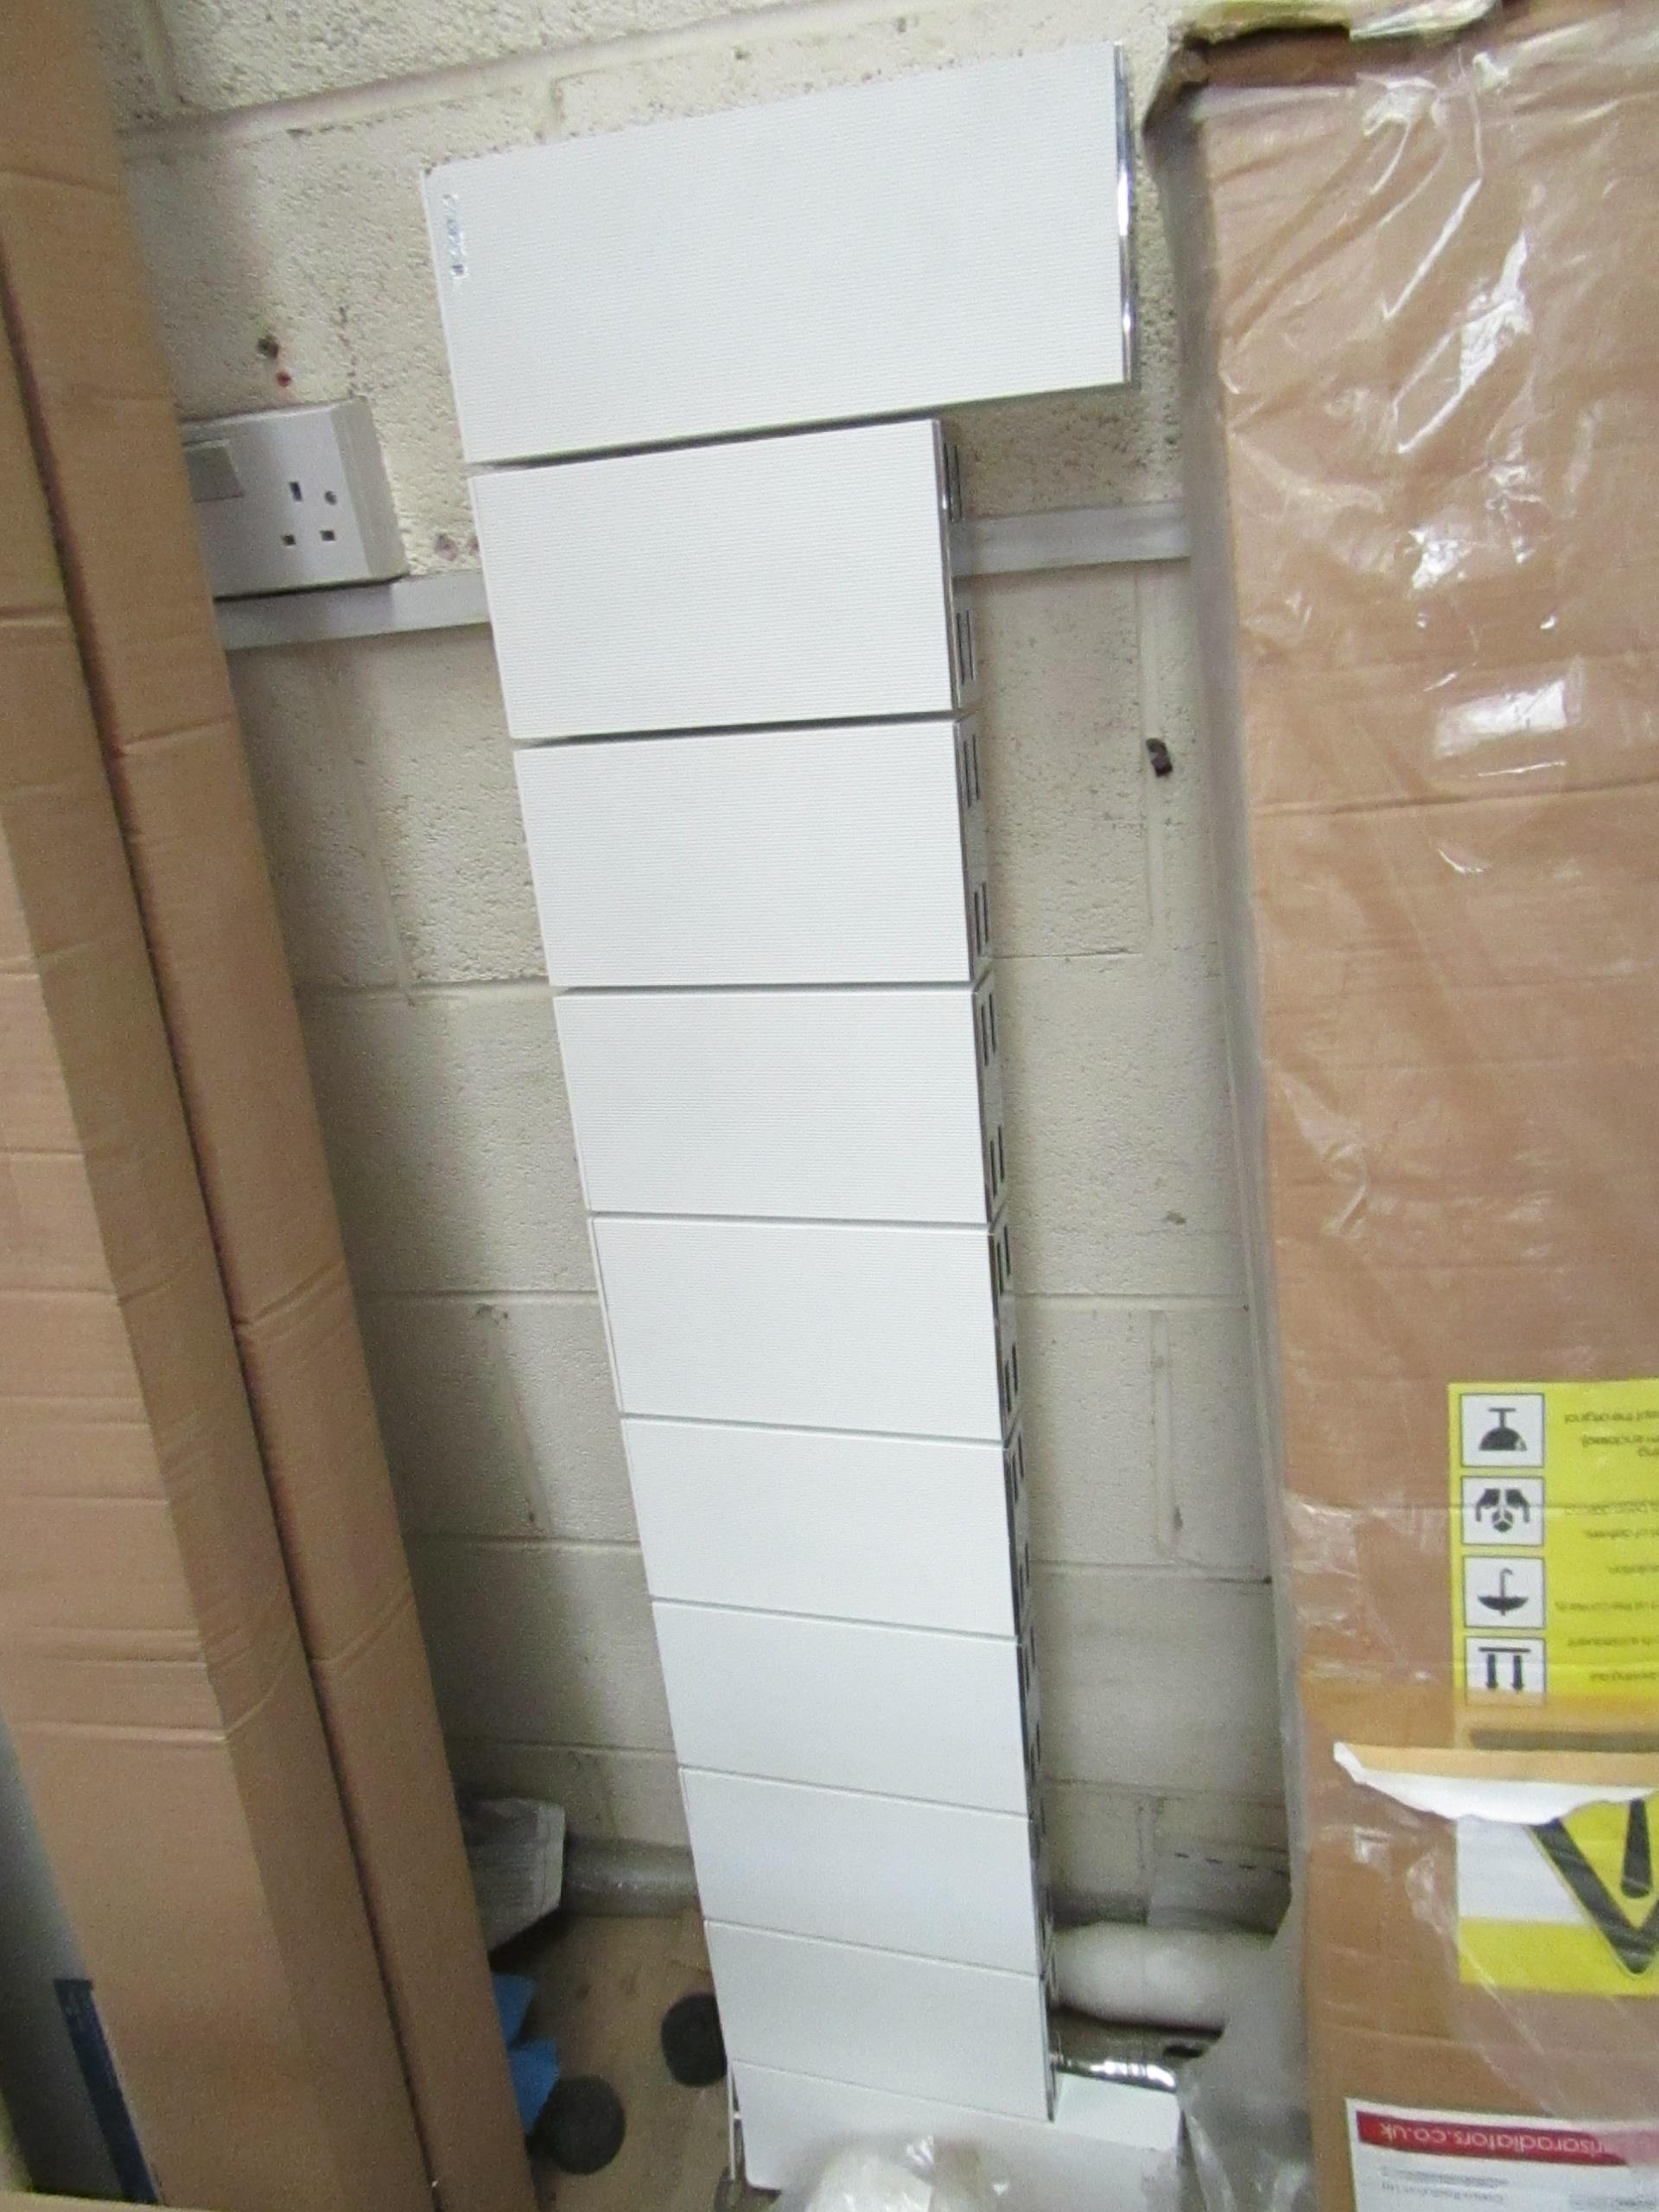 Lot 46 - Carisa Radiators vertical radiator, 1245 x 300, unchecked and boxed.